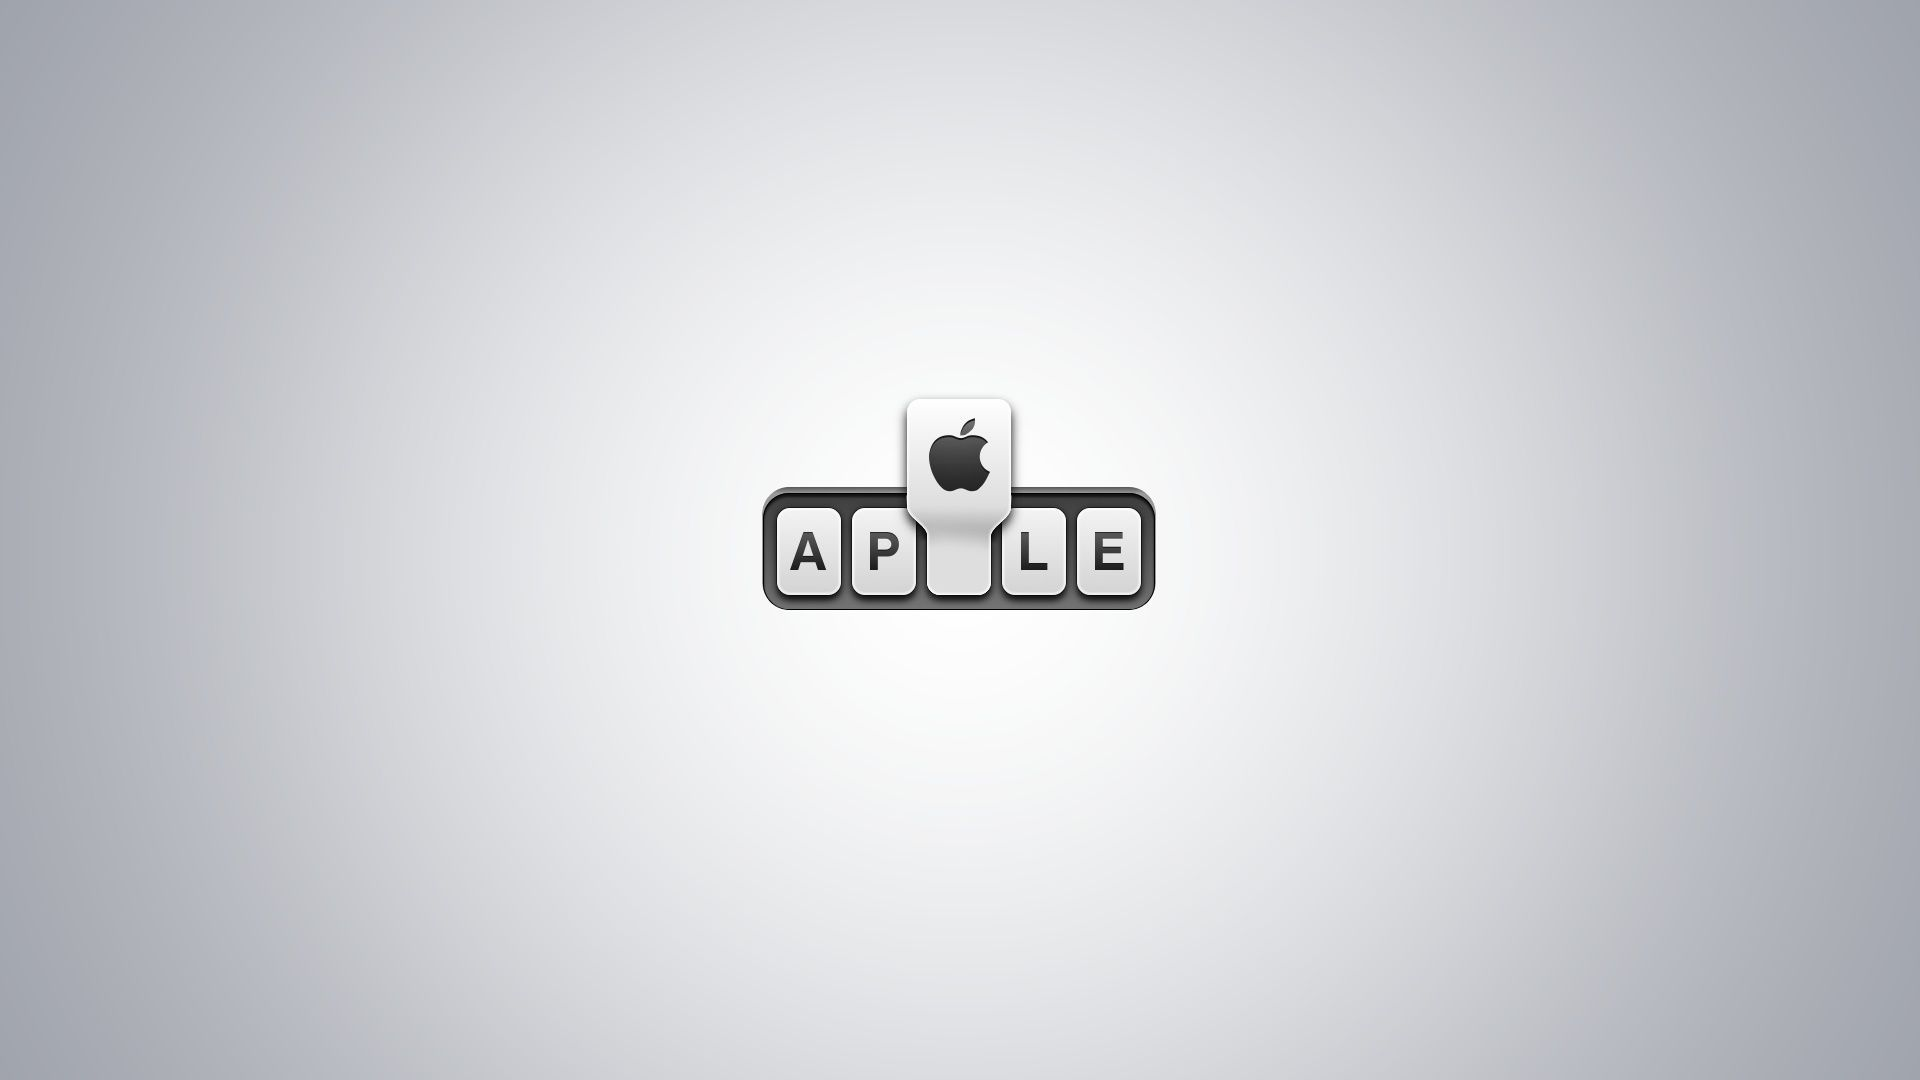 apple glass logo hd desktop wallpaper widescreen high | hd